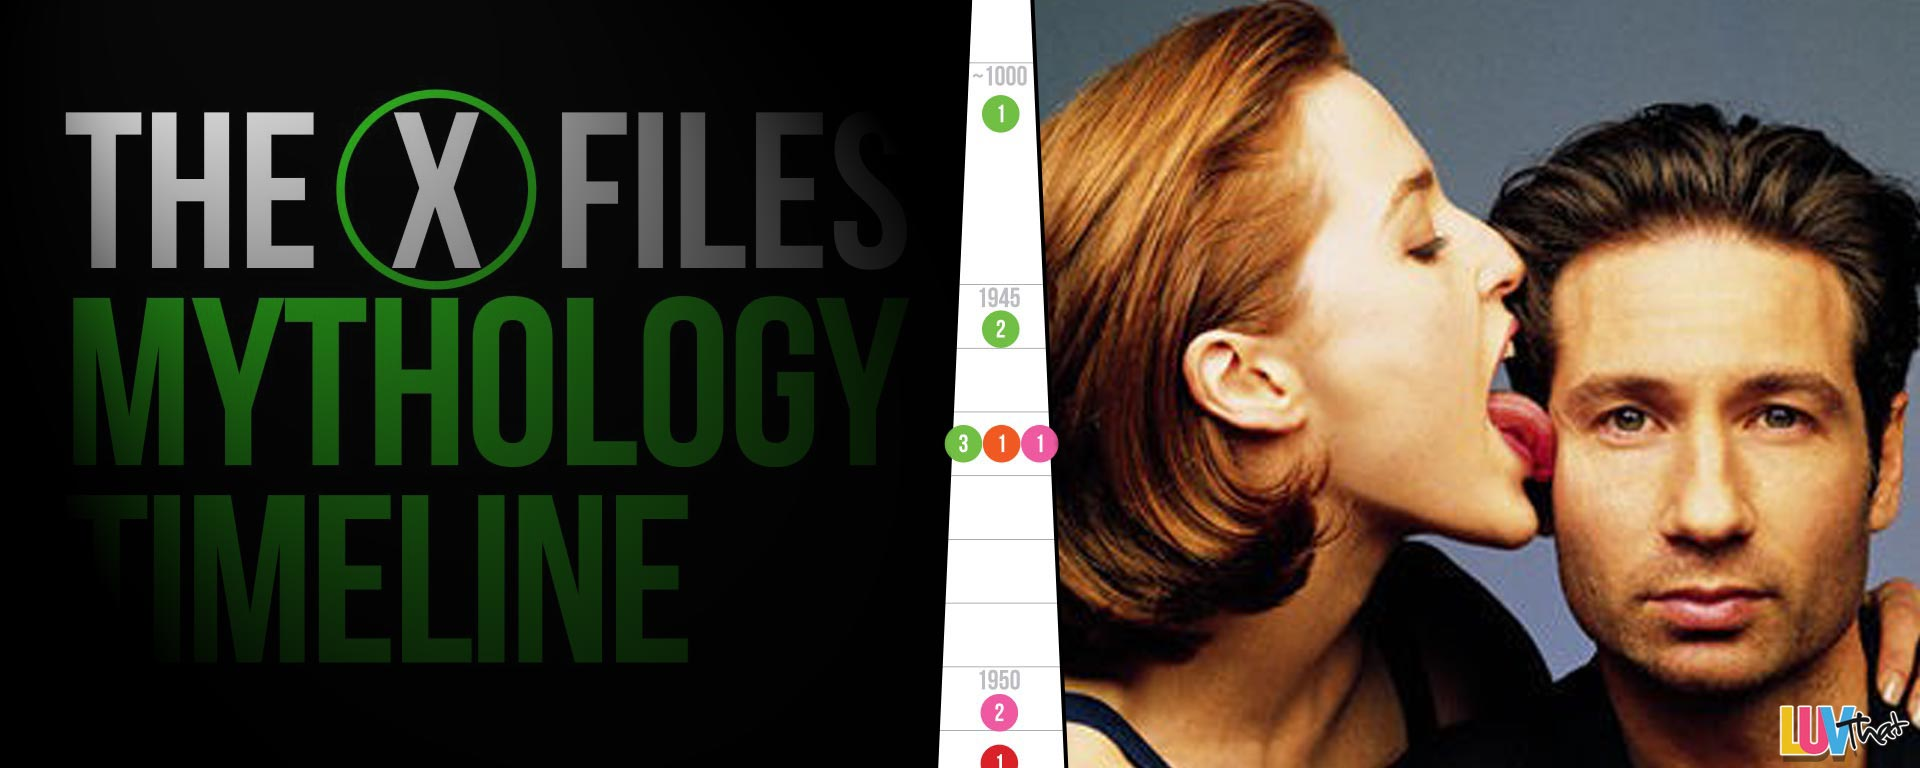 X-FILES Complete Show Timeline gillian anderson david duchovny